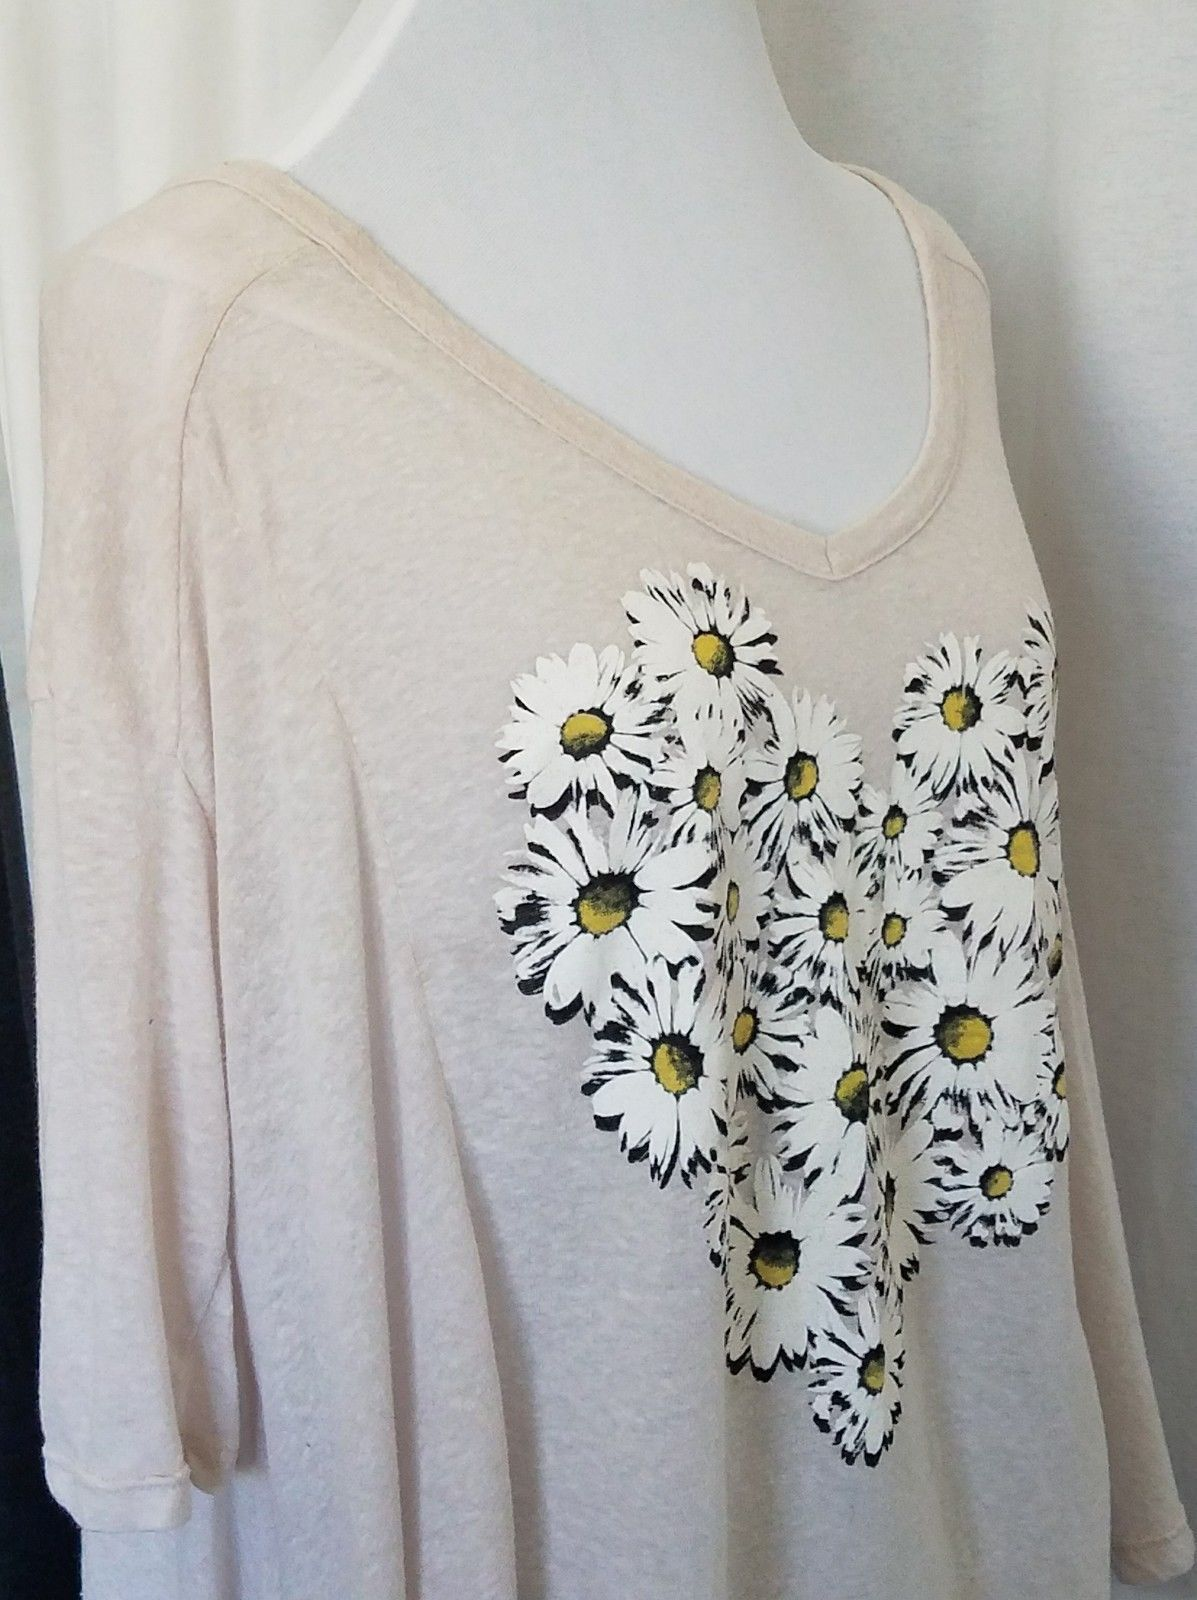 Daisy Heart Cotton Top Short Sleeve T Shirt Asymmetrical Hemline Size M/L